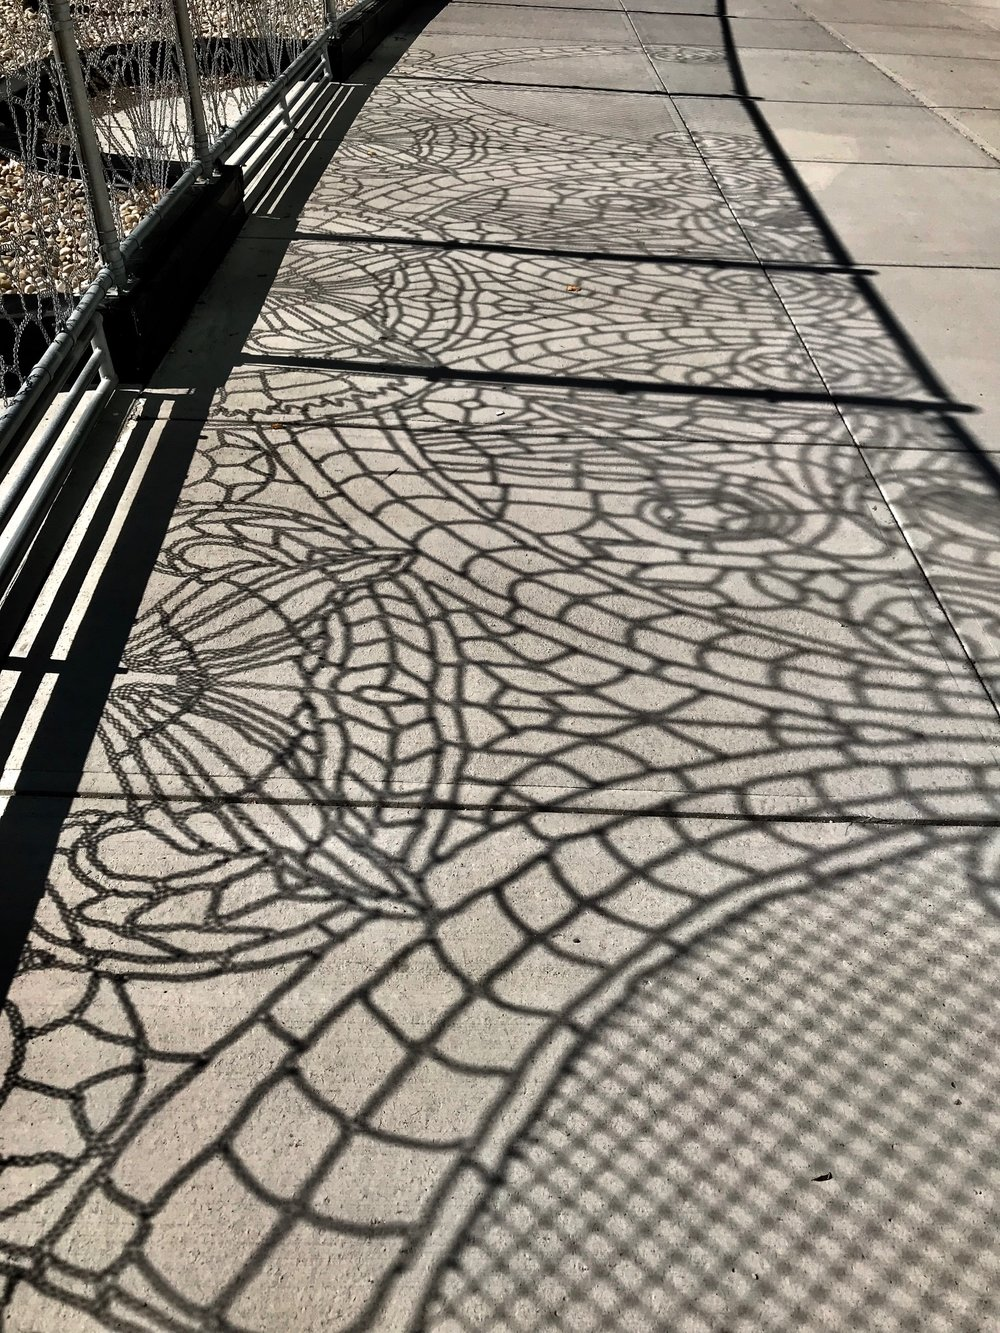 Found this strange shadow sidewalk art in downtown Calgary across from the Bow office tower. It is created by the ornamental chain-linked fence that surrounds a future building site. Kudos to the developer (I expect with some push from the City) to create something more ornamental vs ordinary. More of this in 2019 please!